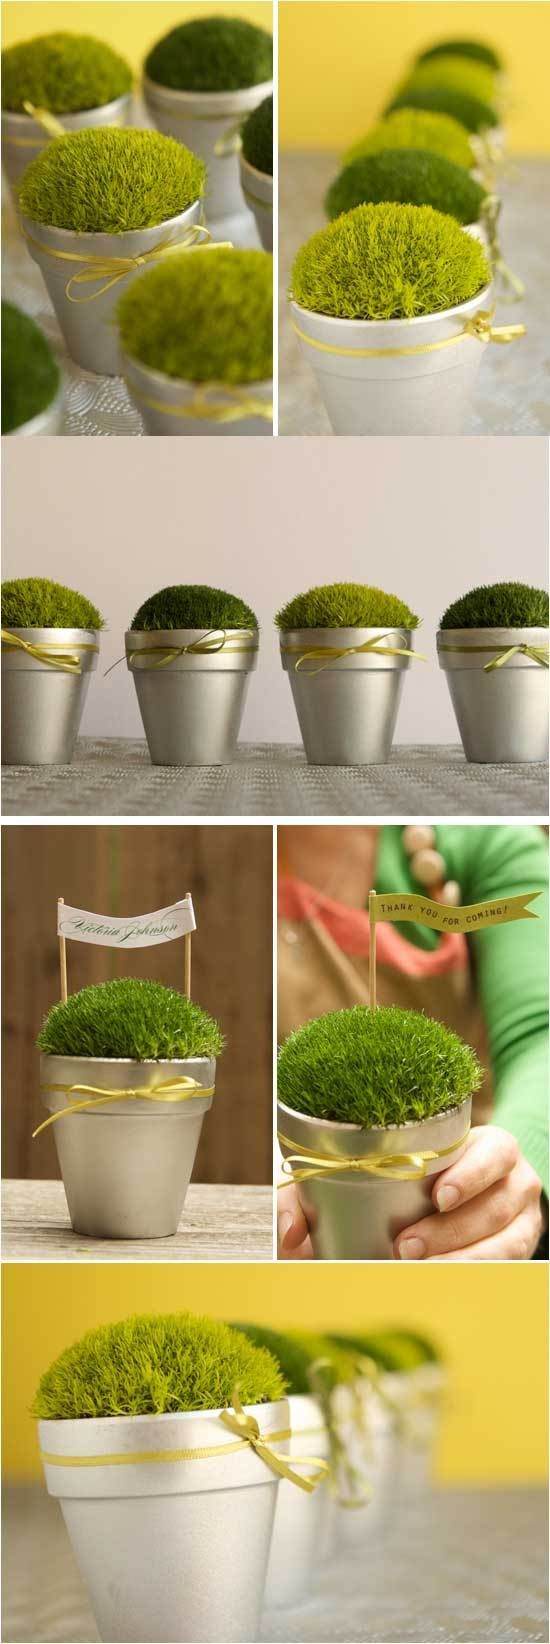 Small Pots of Moss for simple table décor and take-home favors - terra cotta pots, 25 pack tray of Irish Moss, and metallic spray paint (all available at Home Depot), cost less than $2 each to make